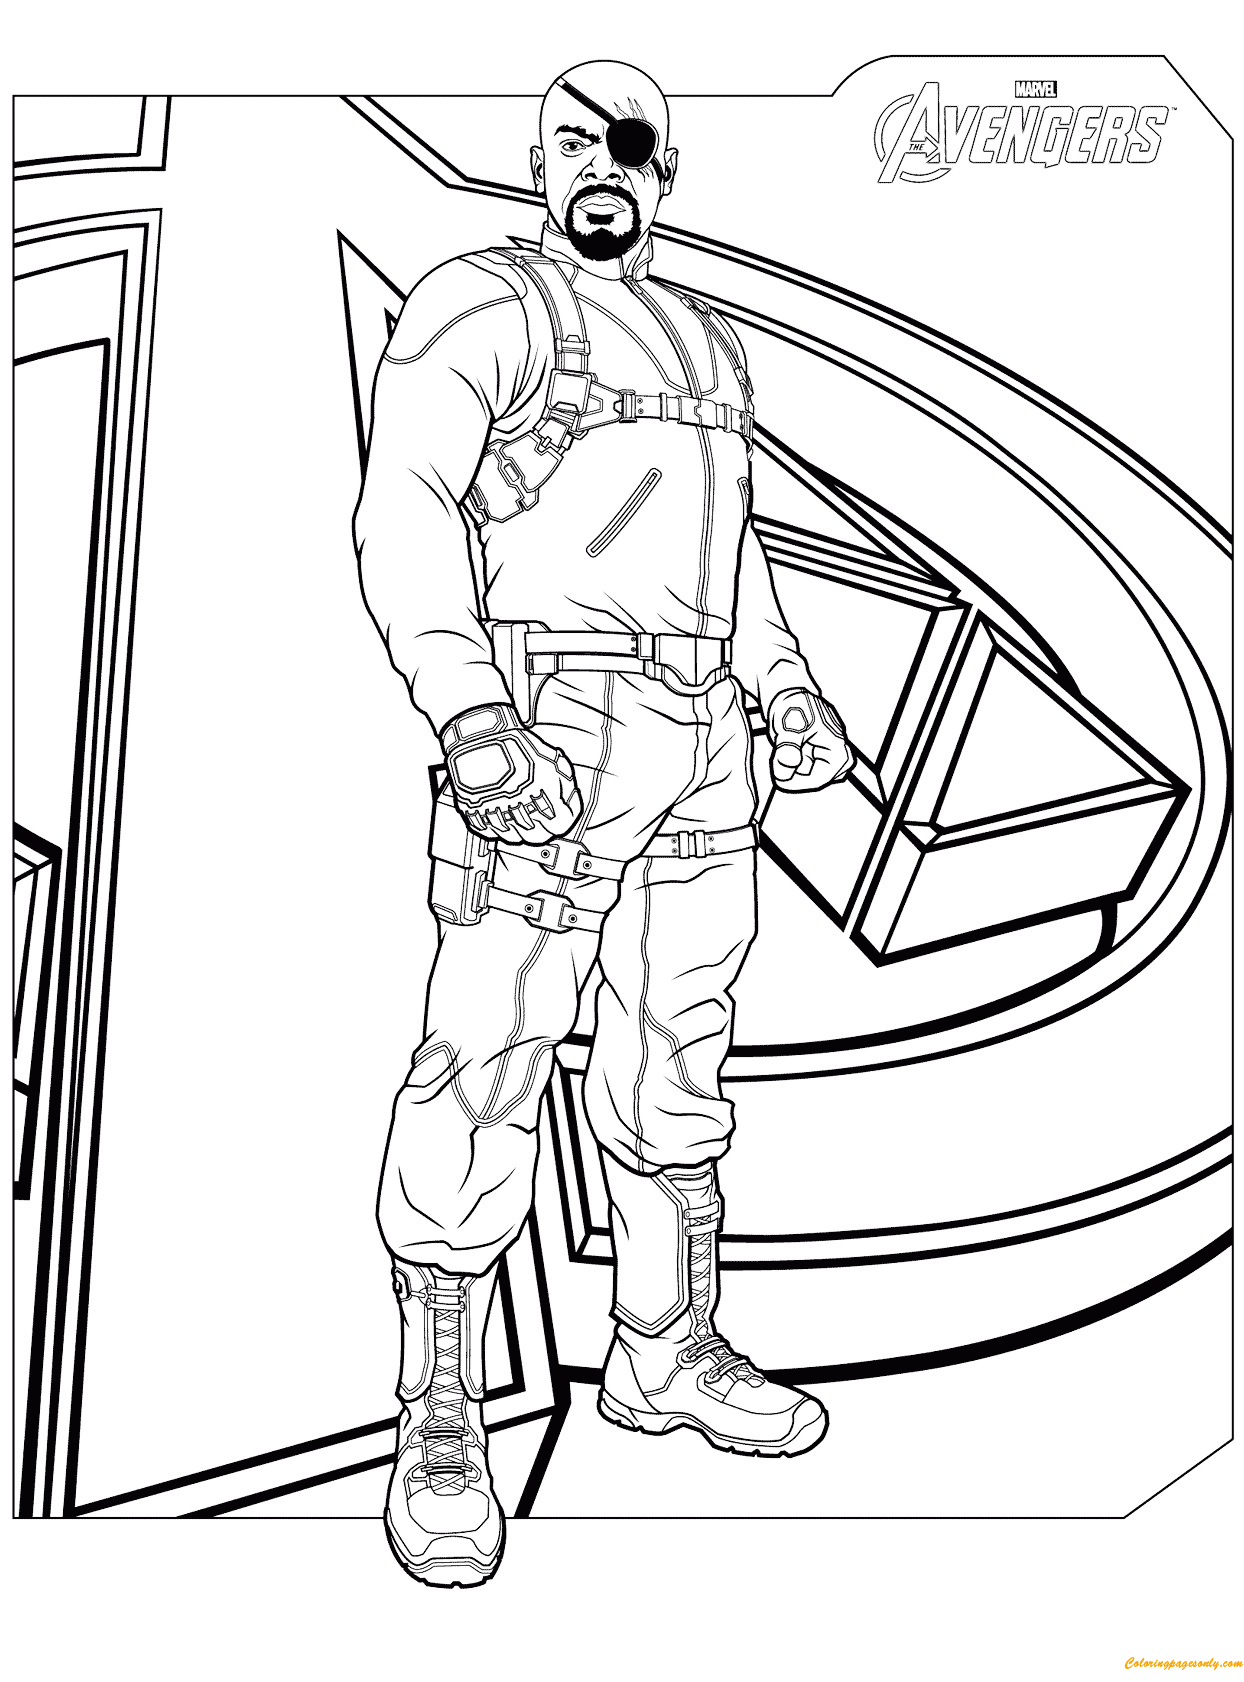 Nick Fury From Avengers Coloring Page Free Coloring Pages Online